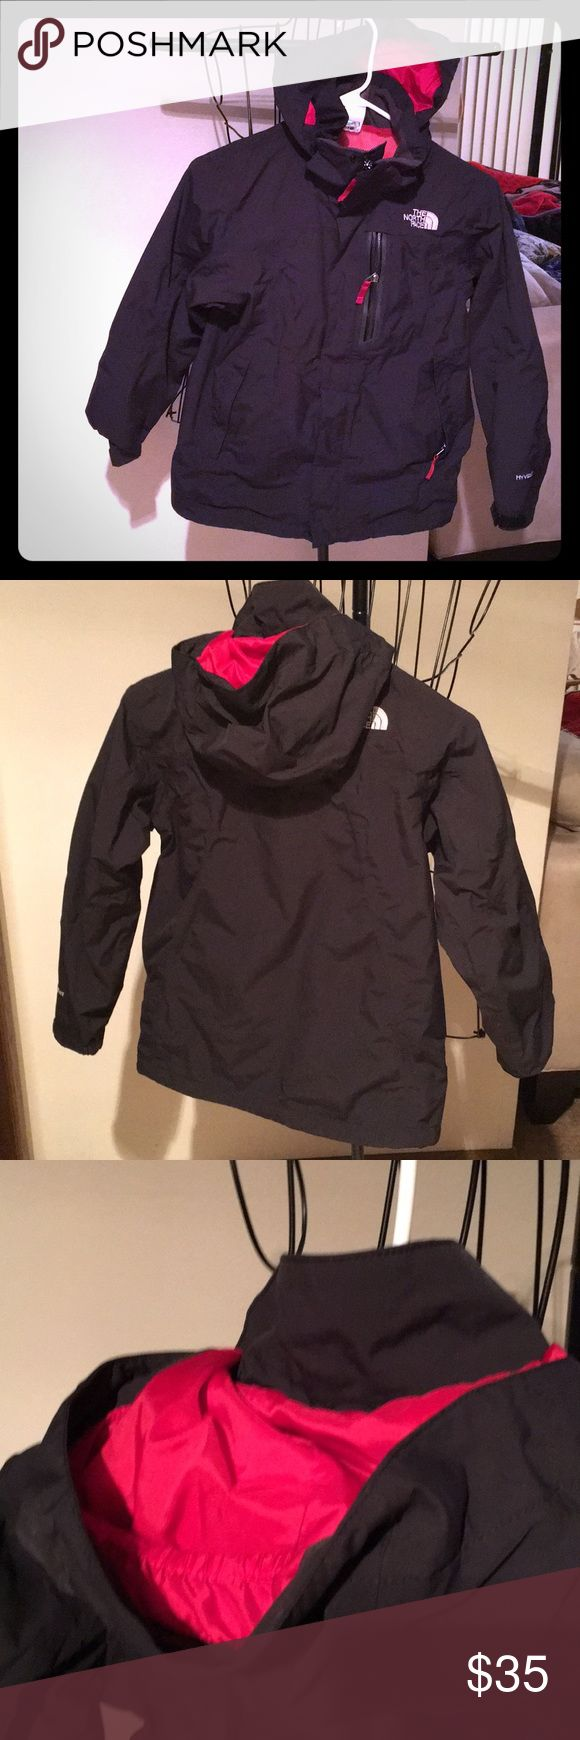 Boys north face jacket, perfect for the rain! My son grew out of this jacket, has been worn and washed, has his name on the inside label in case it got lost at school. It's a great rain and wind jacket, will keep your little one warm and dry! The North Face Jackets & Coats Raincoats